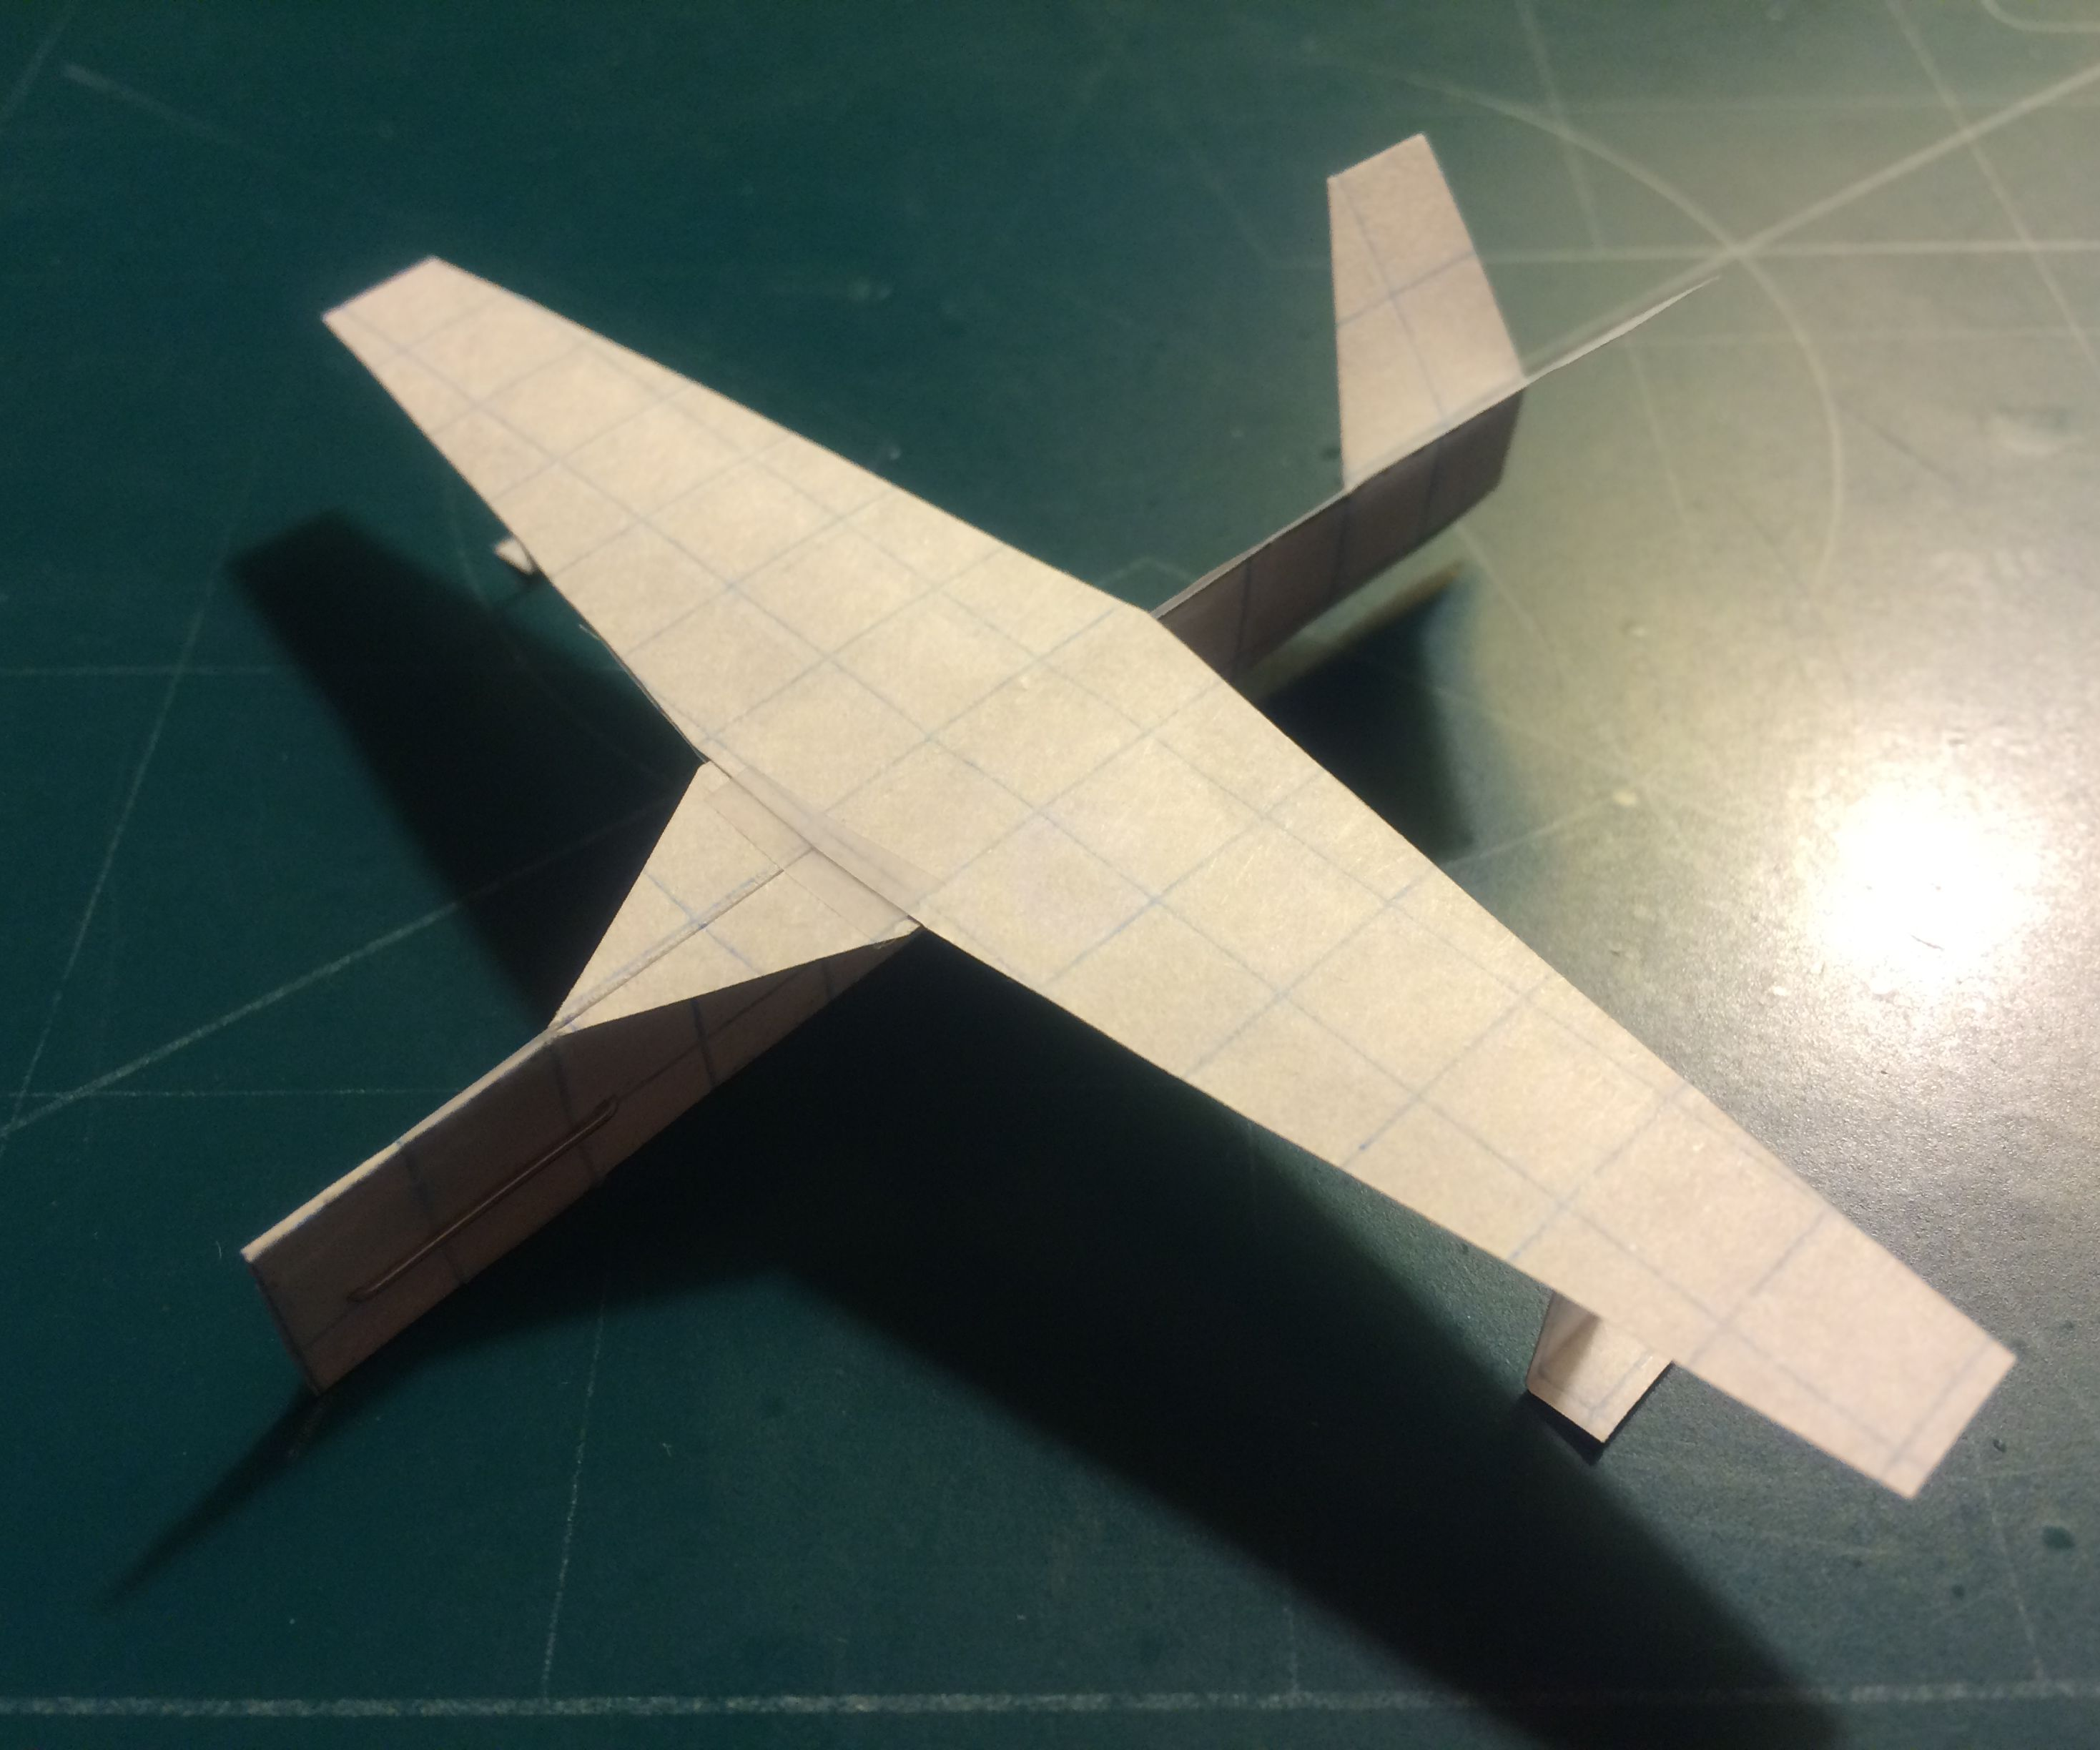 How To Make The Super SkyTraveler Paper Airplane